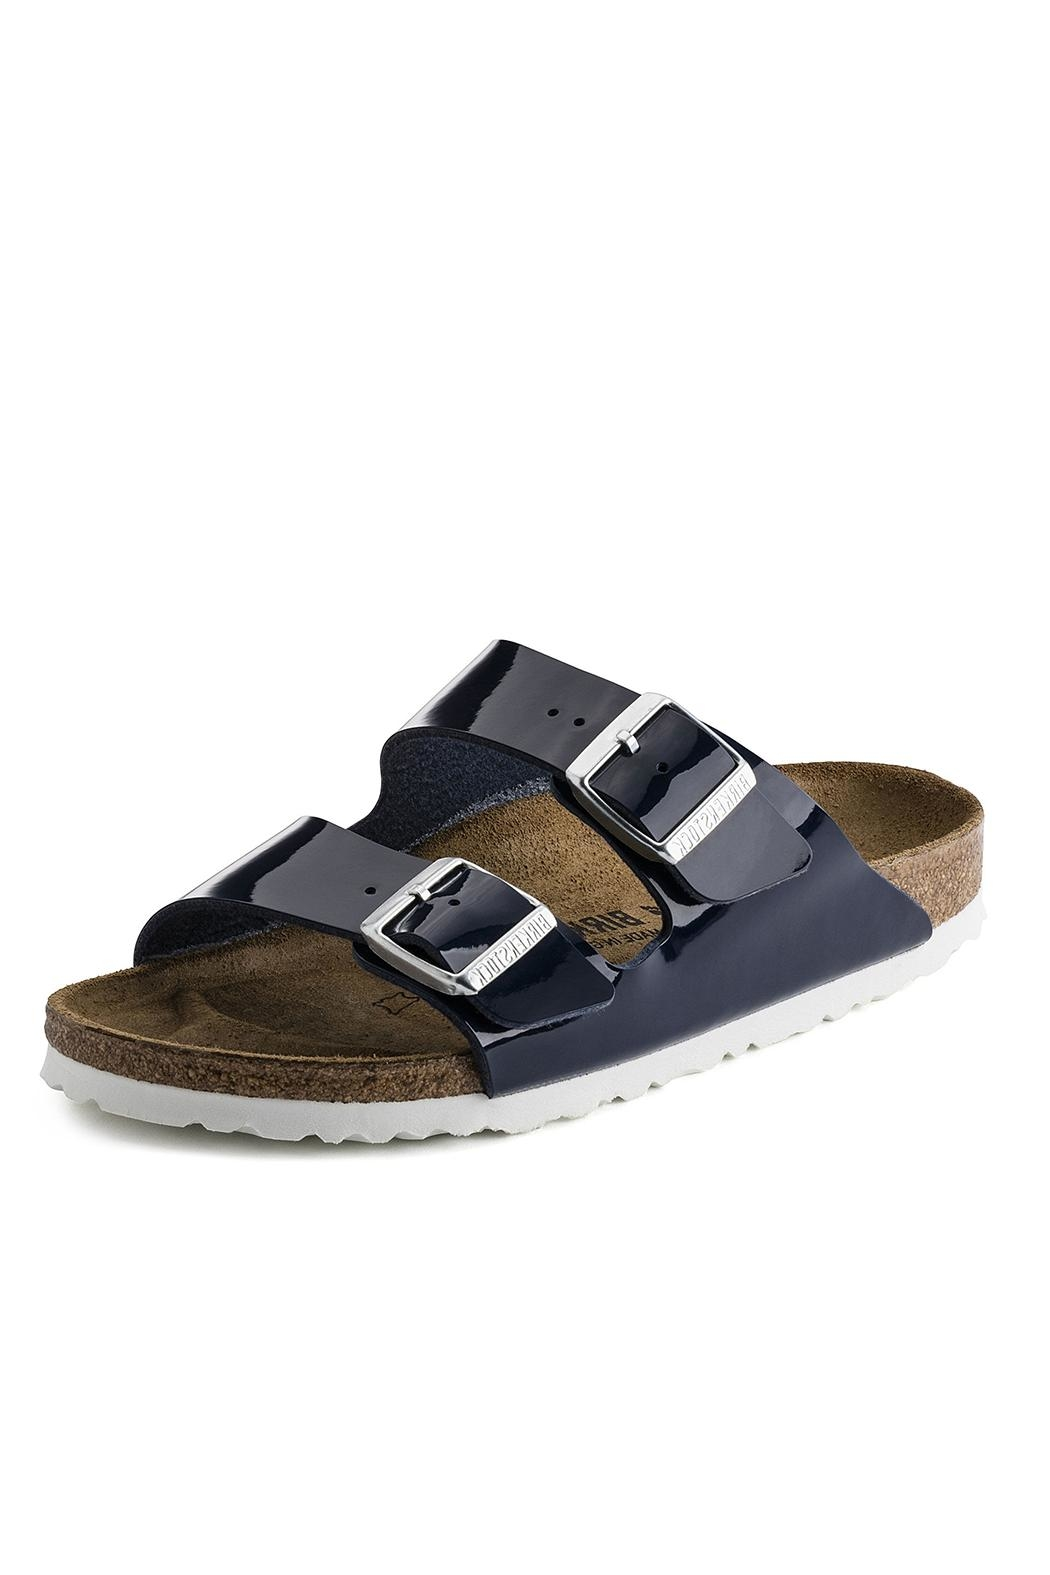 Birkenstock Arizona Limited Edition - Main Image